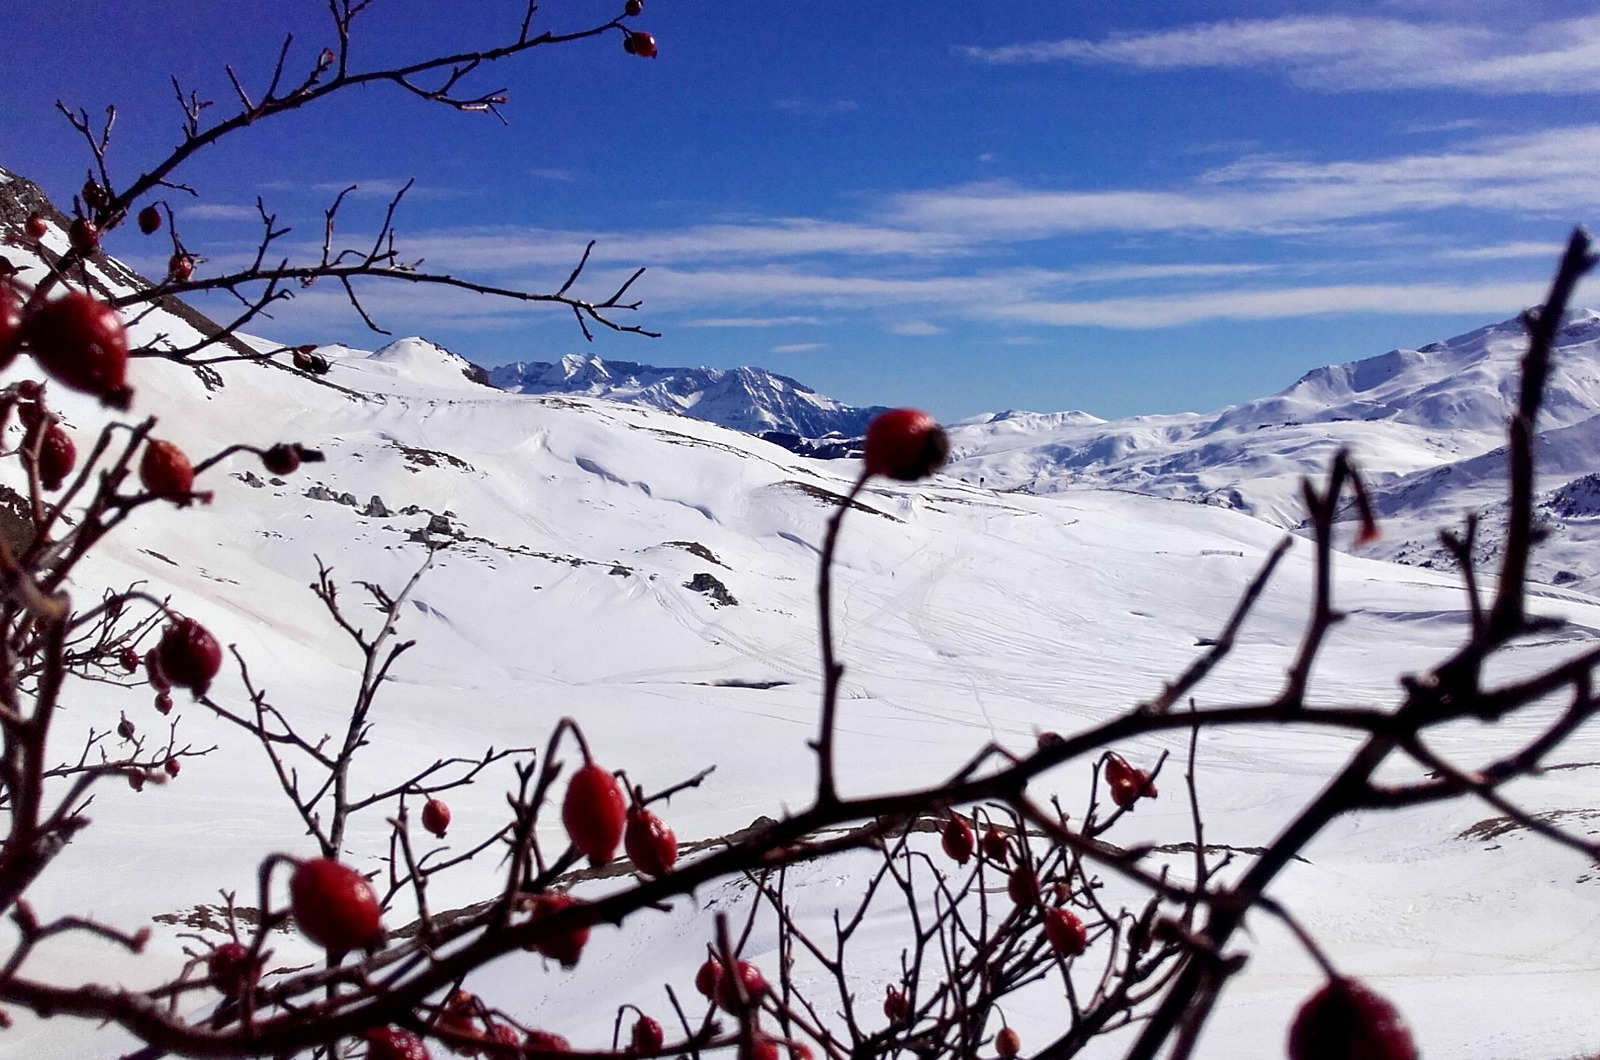 A snow covered mountain landscape with rose hips in the foreground on our Snowshoeing Holidays Pyrenees